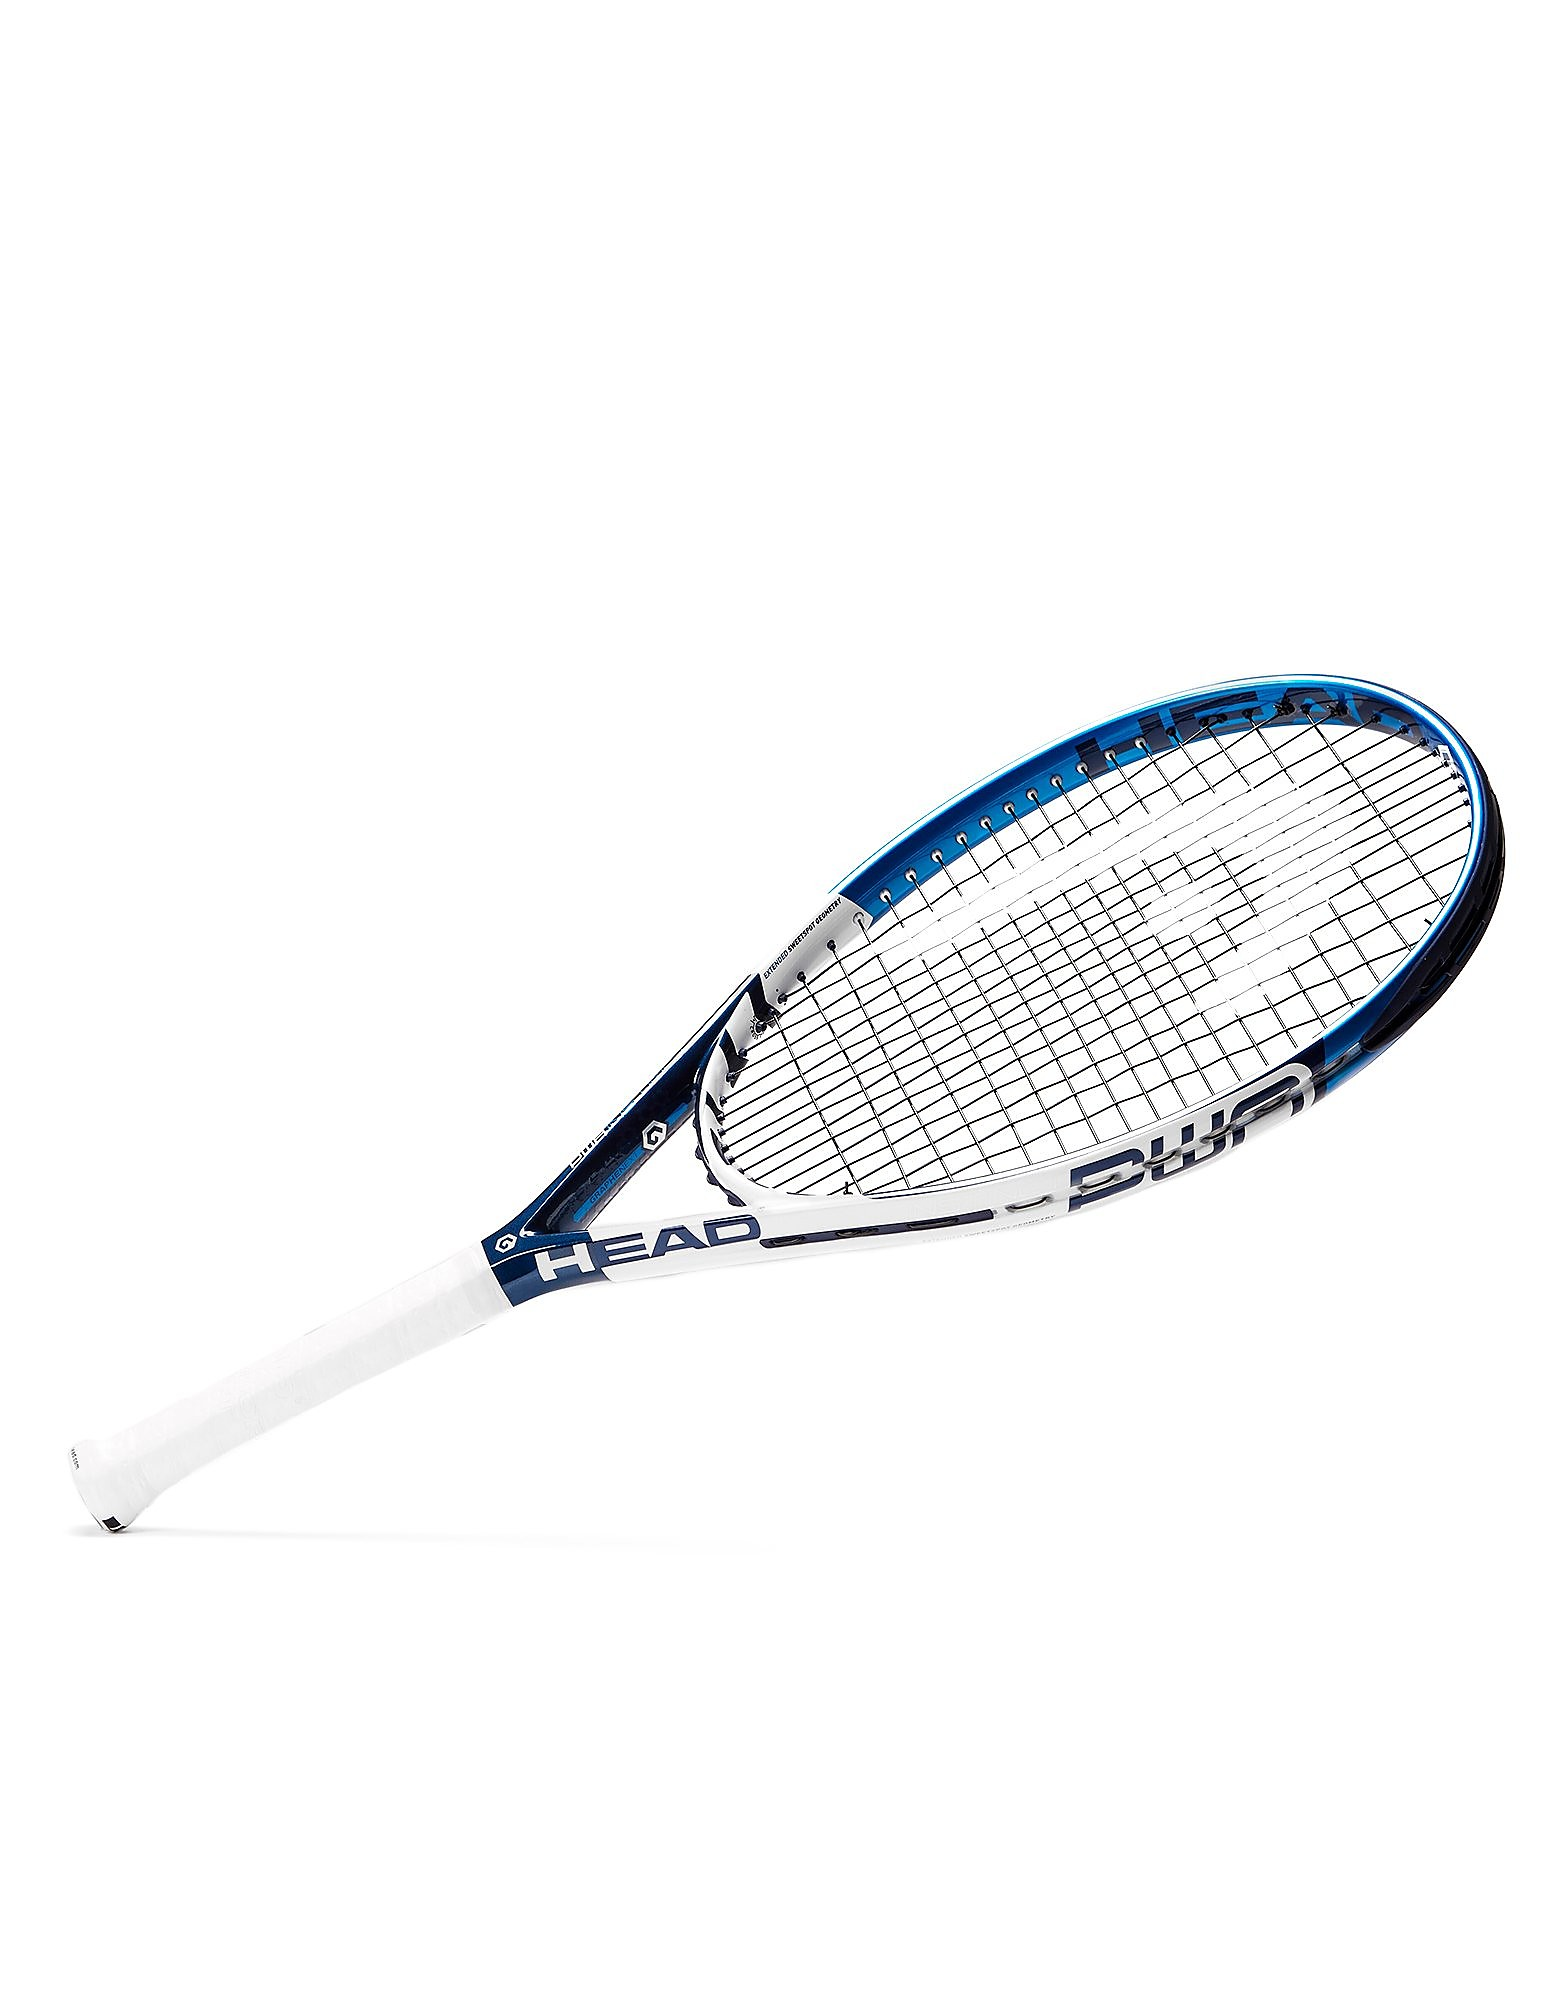 Head Graphene XT Instinct Tennis Racket